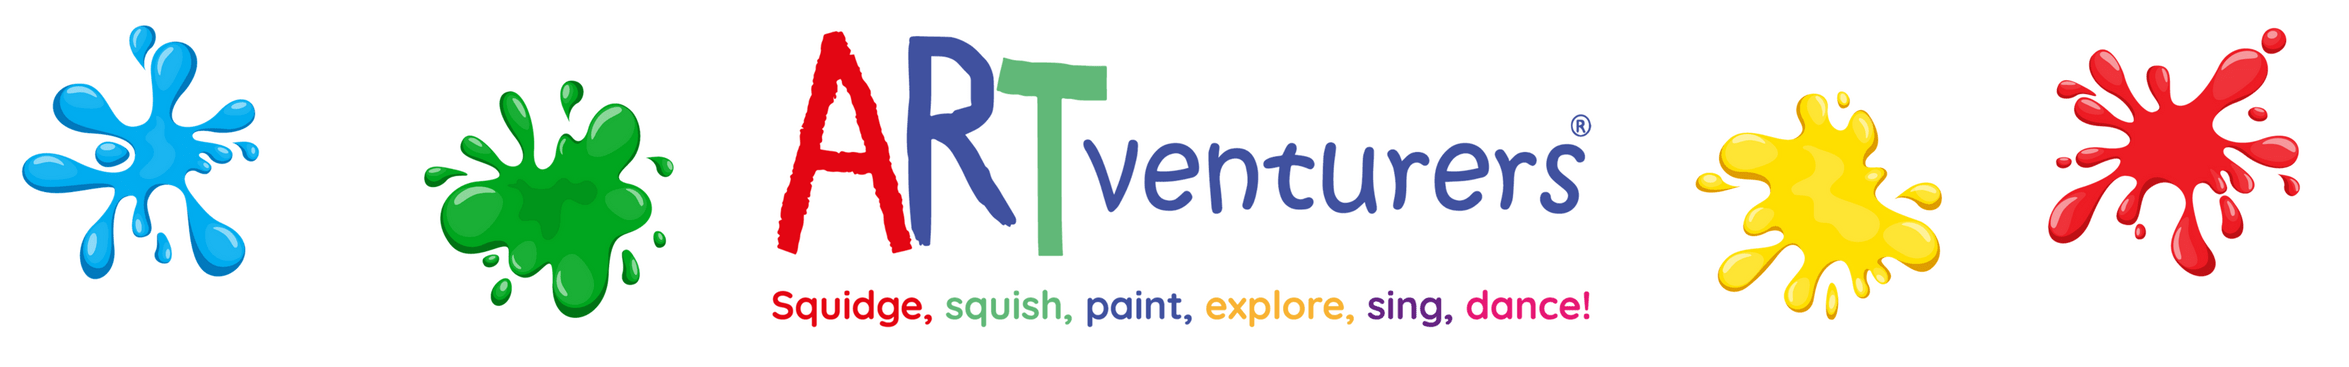 ARTventurers Mansfield, Southwell and Sutton-in-Ashfield